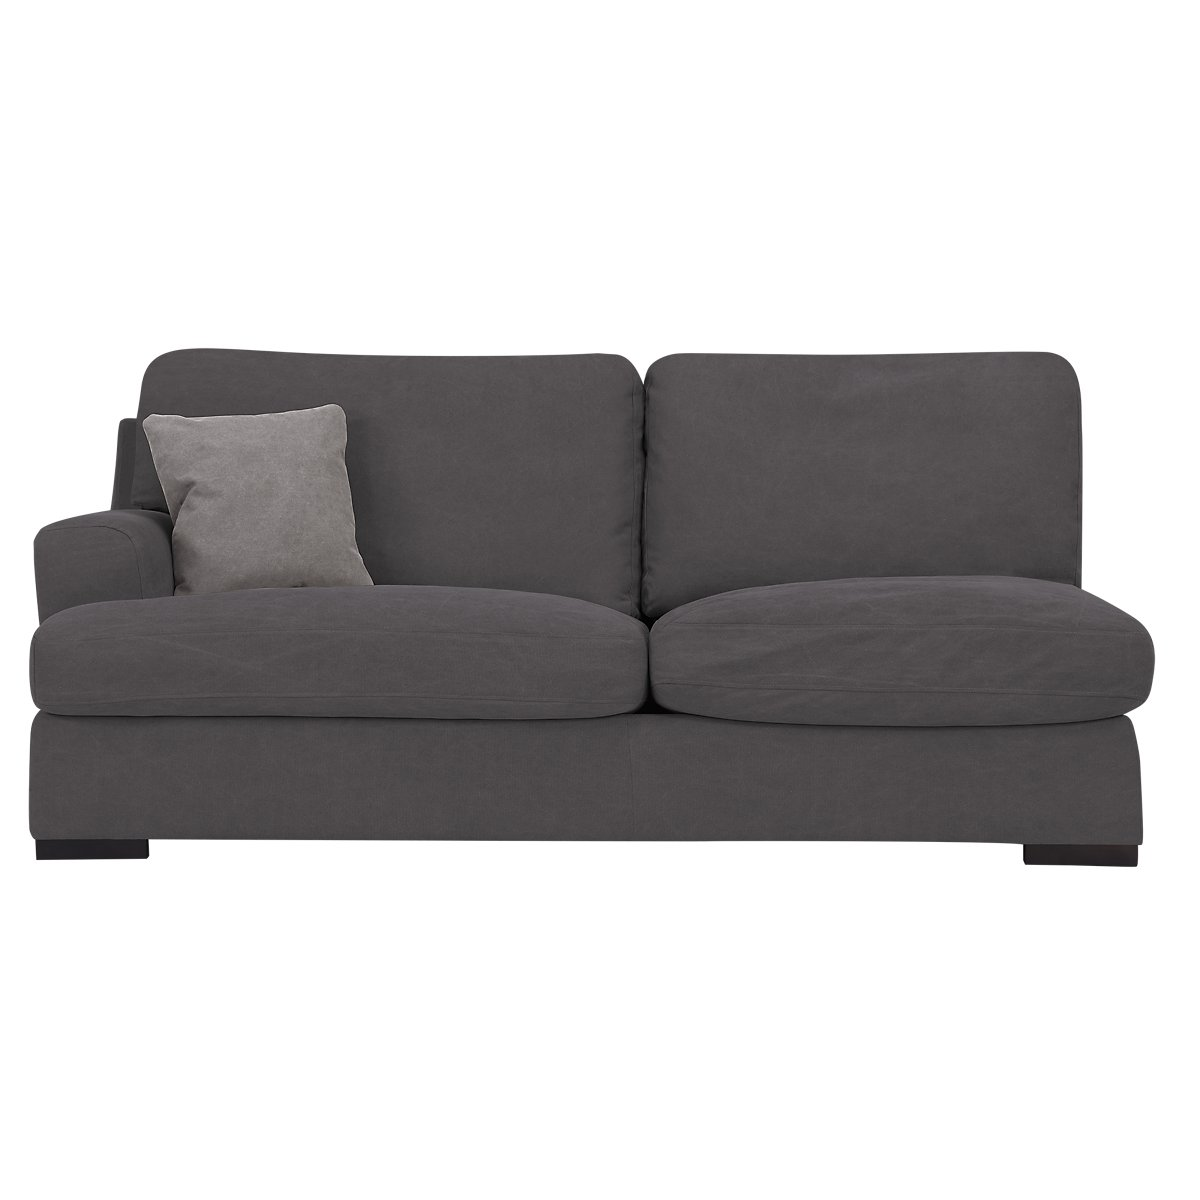 City Furniture Samson Dark Gray Fabric Small Two Arm